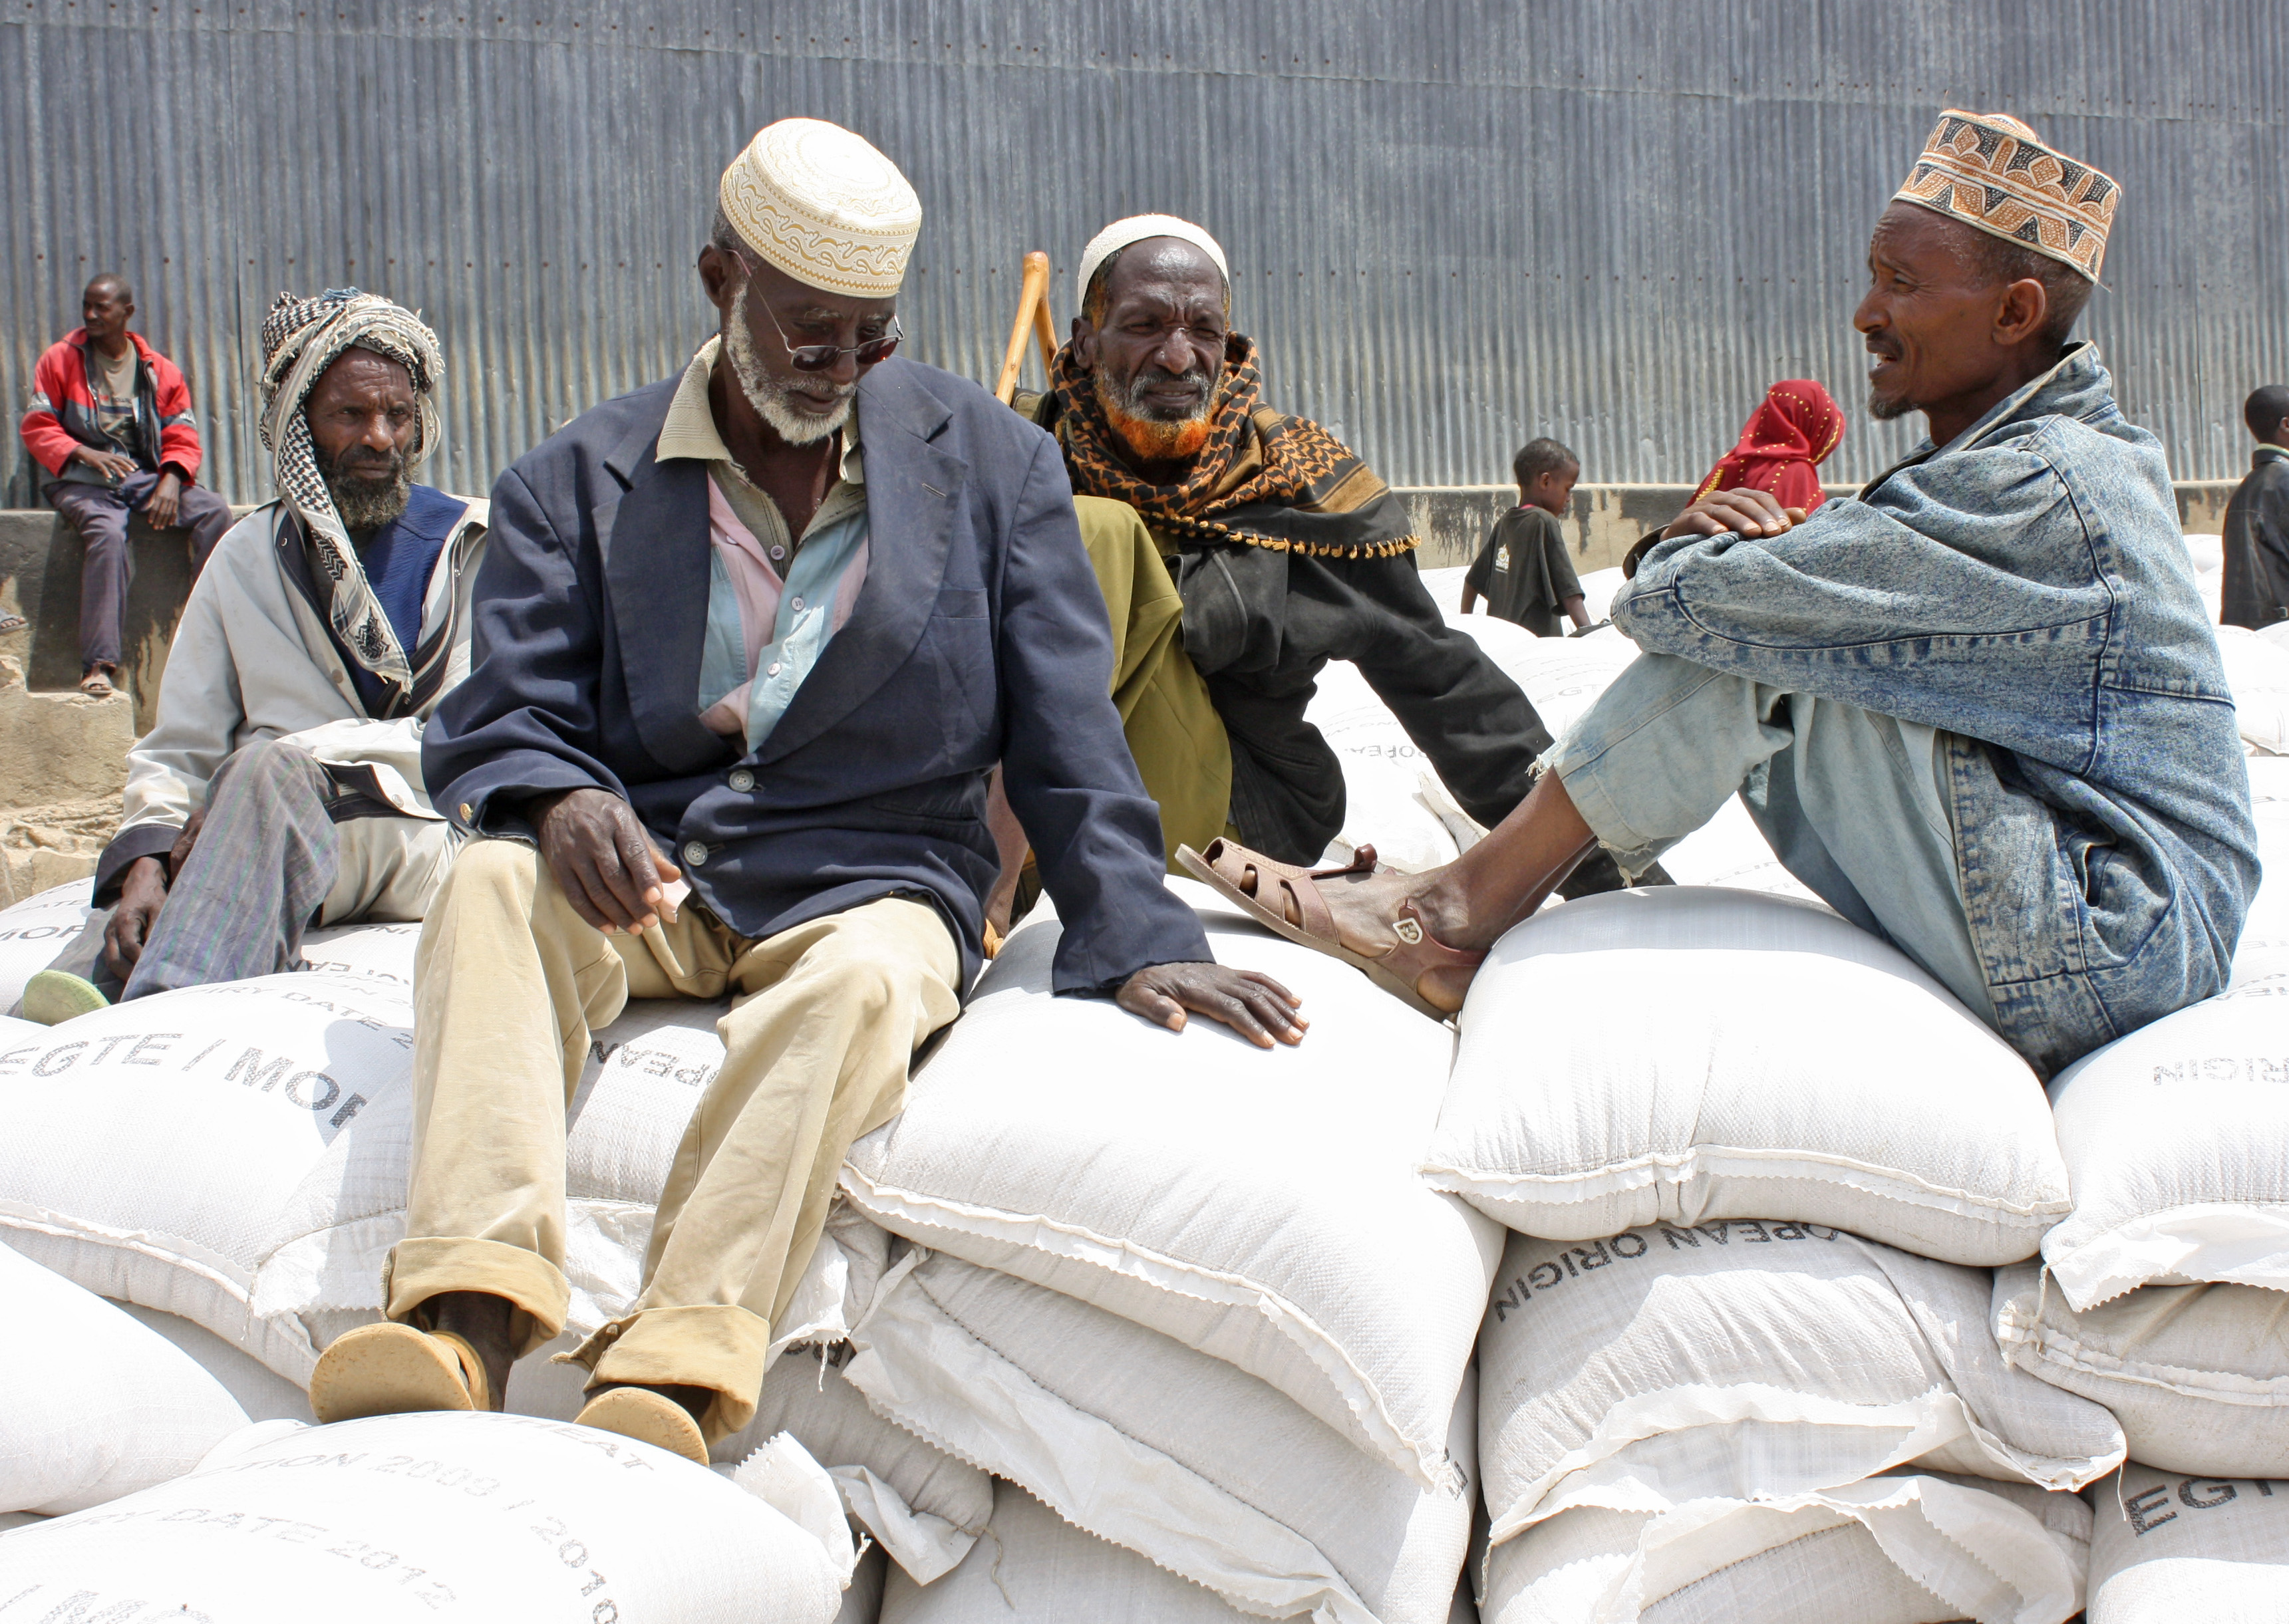 The elderly await their share while sitting on piles of sacks filled with cereal for aid hand-outs under the Productive Safety Net Programme in the Borena zone in Ethiopia's Oromiya region